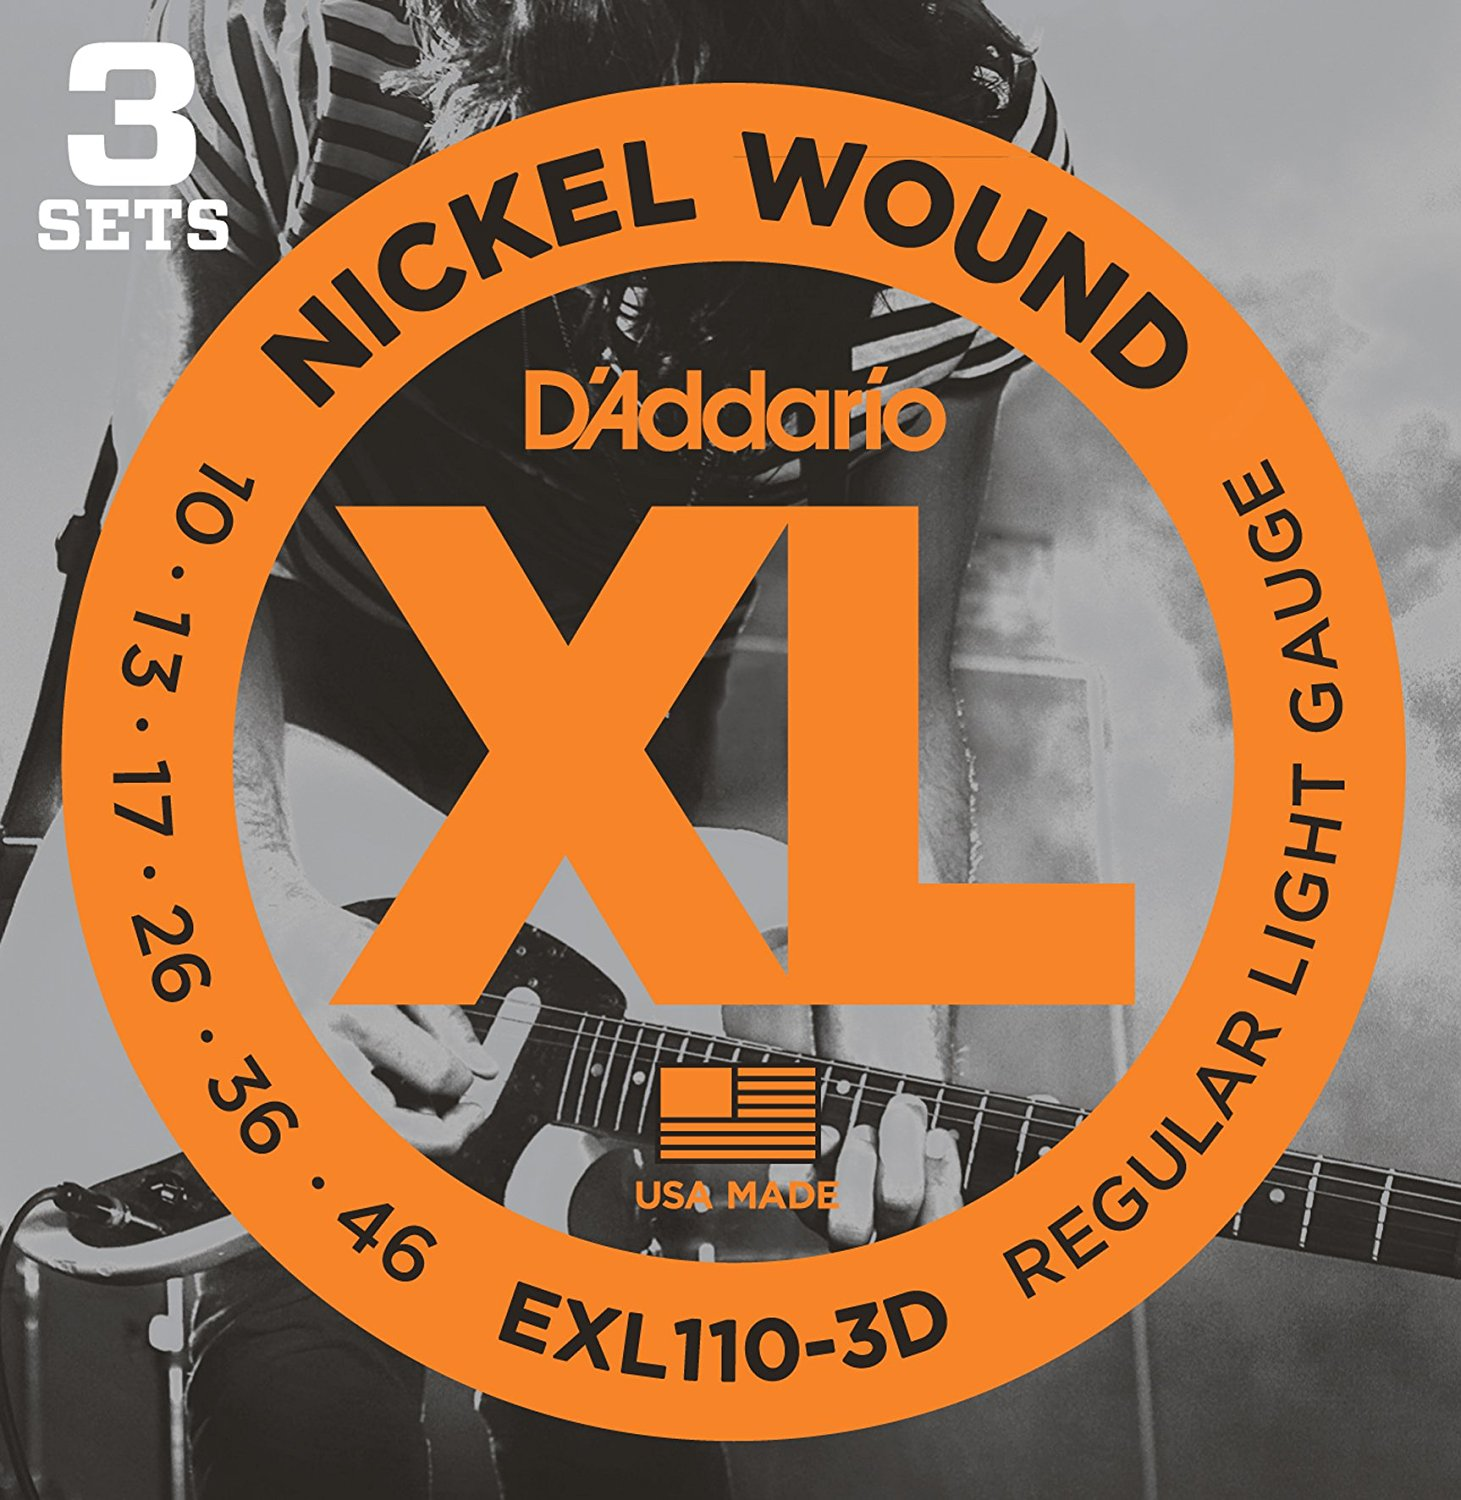 D'Addario EXL110-3D / EXL120-3D Nickel Wound Electric Guitar Strings, Regular Light or Super Light, 3 Sets Value Pack electric guitar strings 009 010 plated steel coated nickel alloy wound alice a506